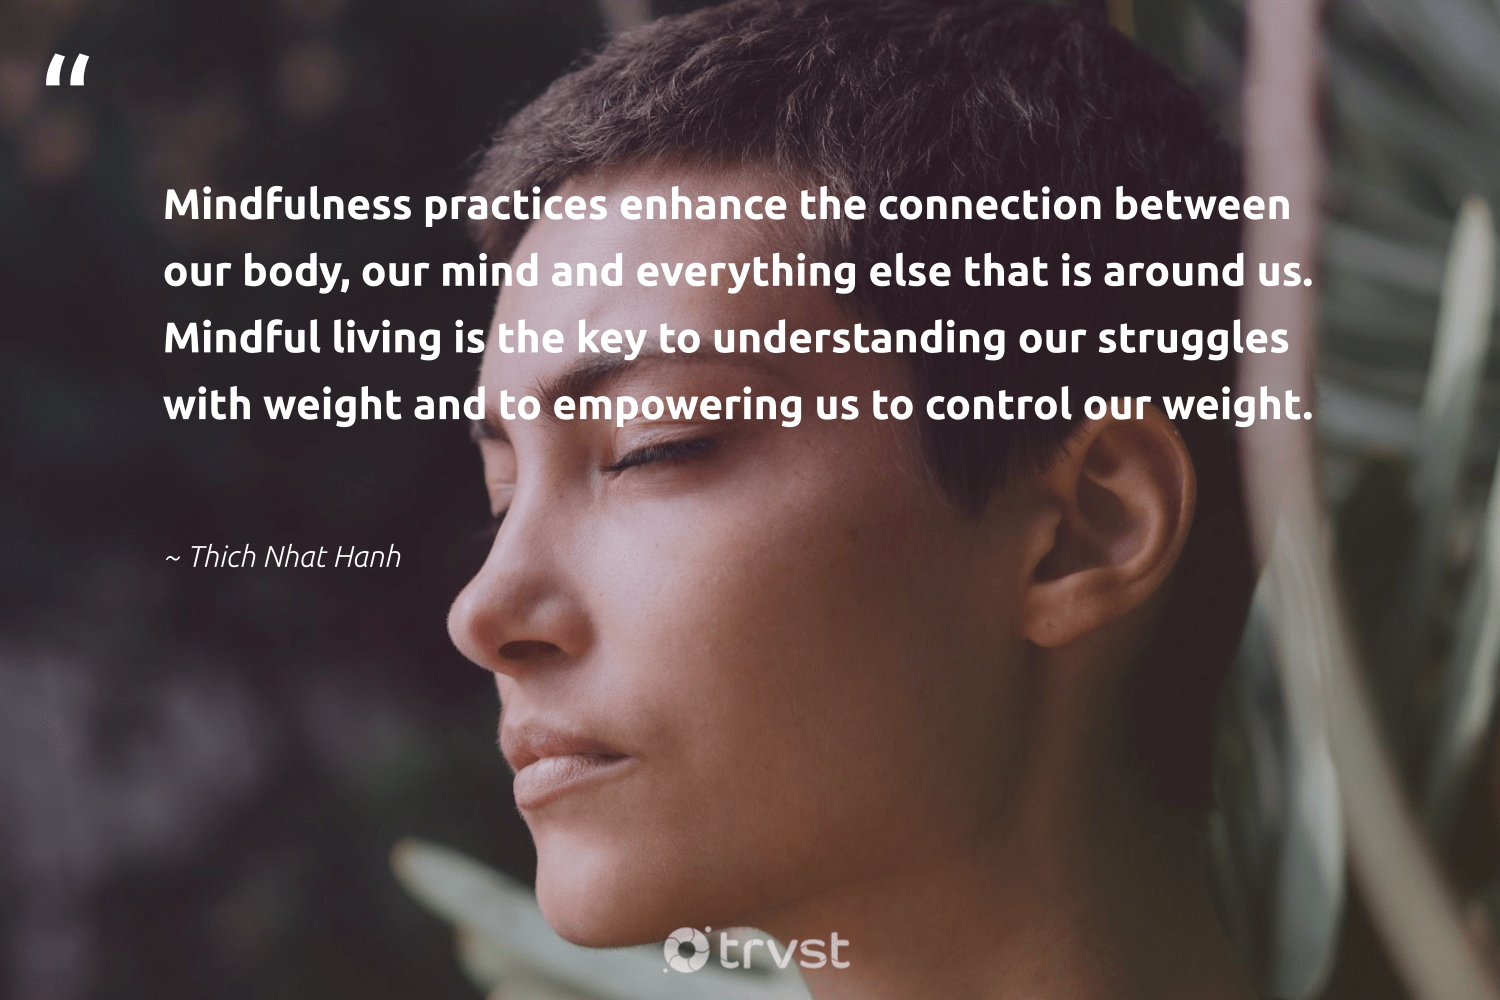 """""""Mindfulness practices enhance the connection between our body, our mind and everything else that is around us. Mindful living is the key to understanding our struggles with weight and to empowering us to control our weight.""""  - Thich Nhat Hanh #trvst #quotes #mindfulness #mindful #motivation #positivity #kindness #nevergiveup #planetearthfirst #mindset #growthmindset #mentalheatlh"""